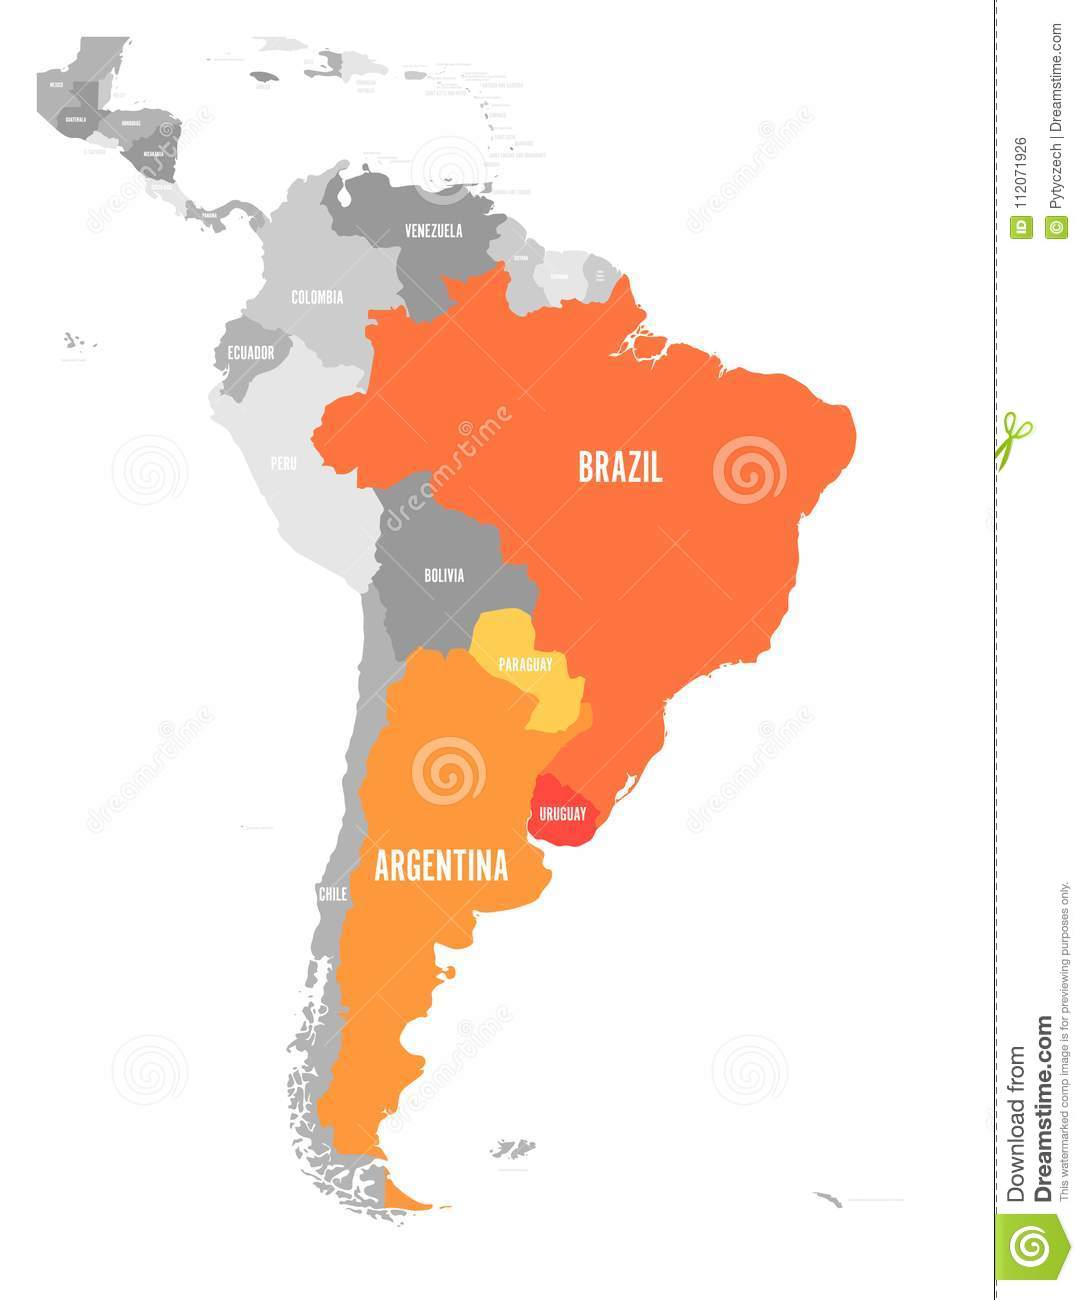 Map of mercosur countires south american trade association orange download comp gumiabroncs Images